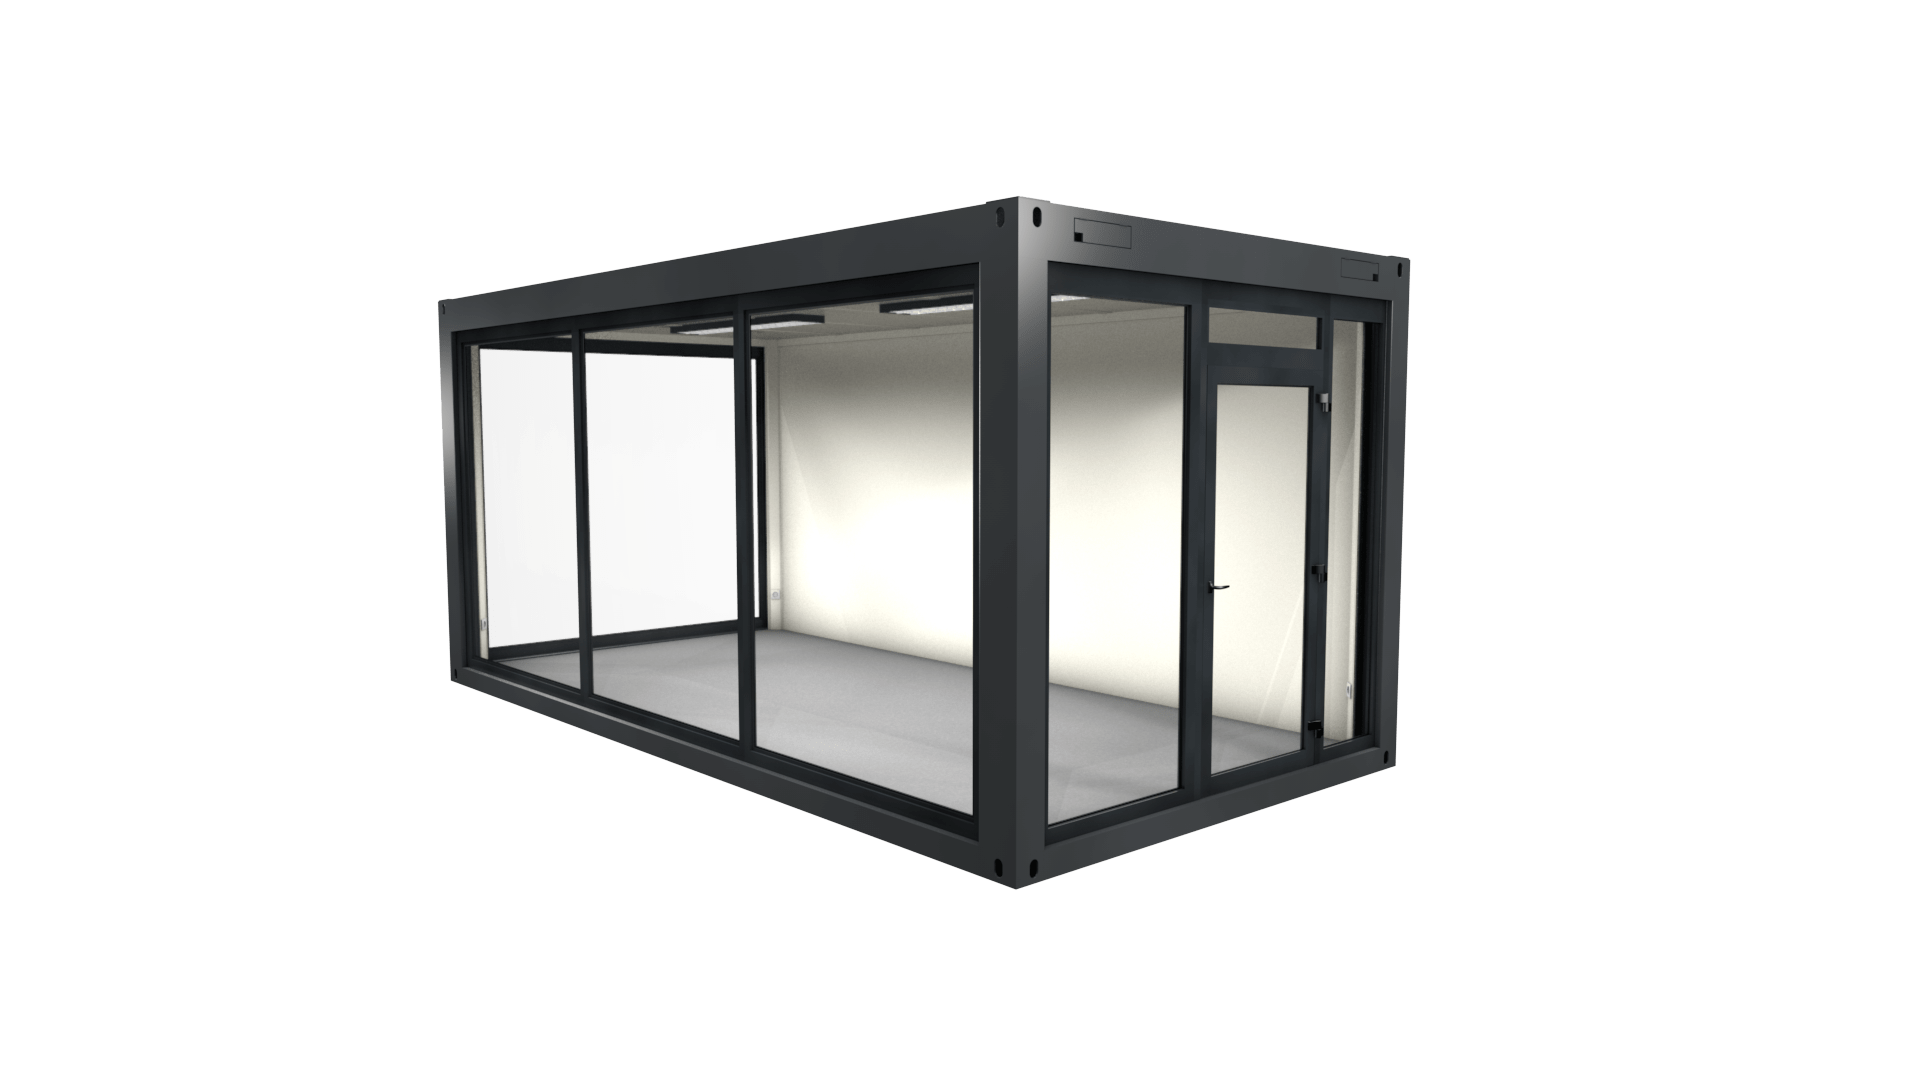 Container Modul 3 mit Panorama Fenster